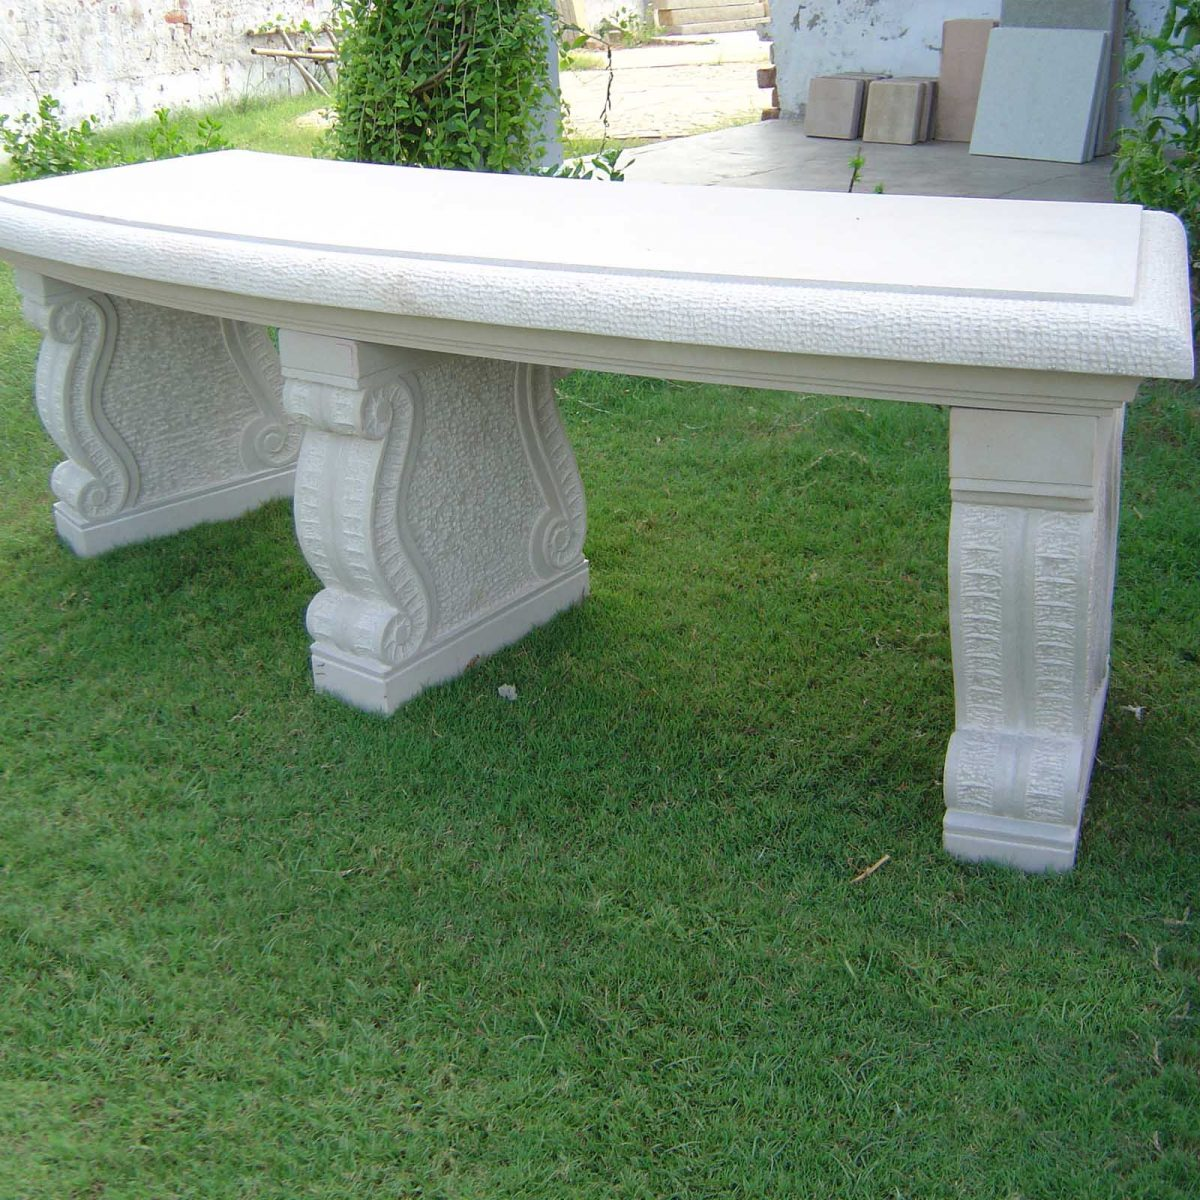 Stone Garden Bench Outdoor Articles For Sale From Indian